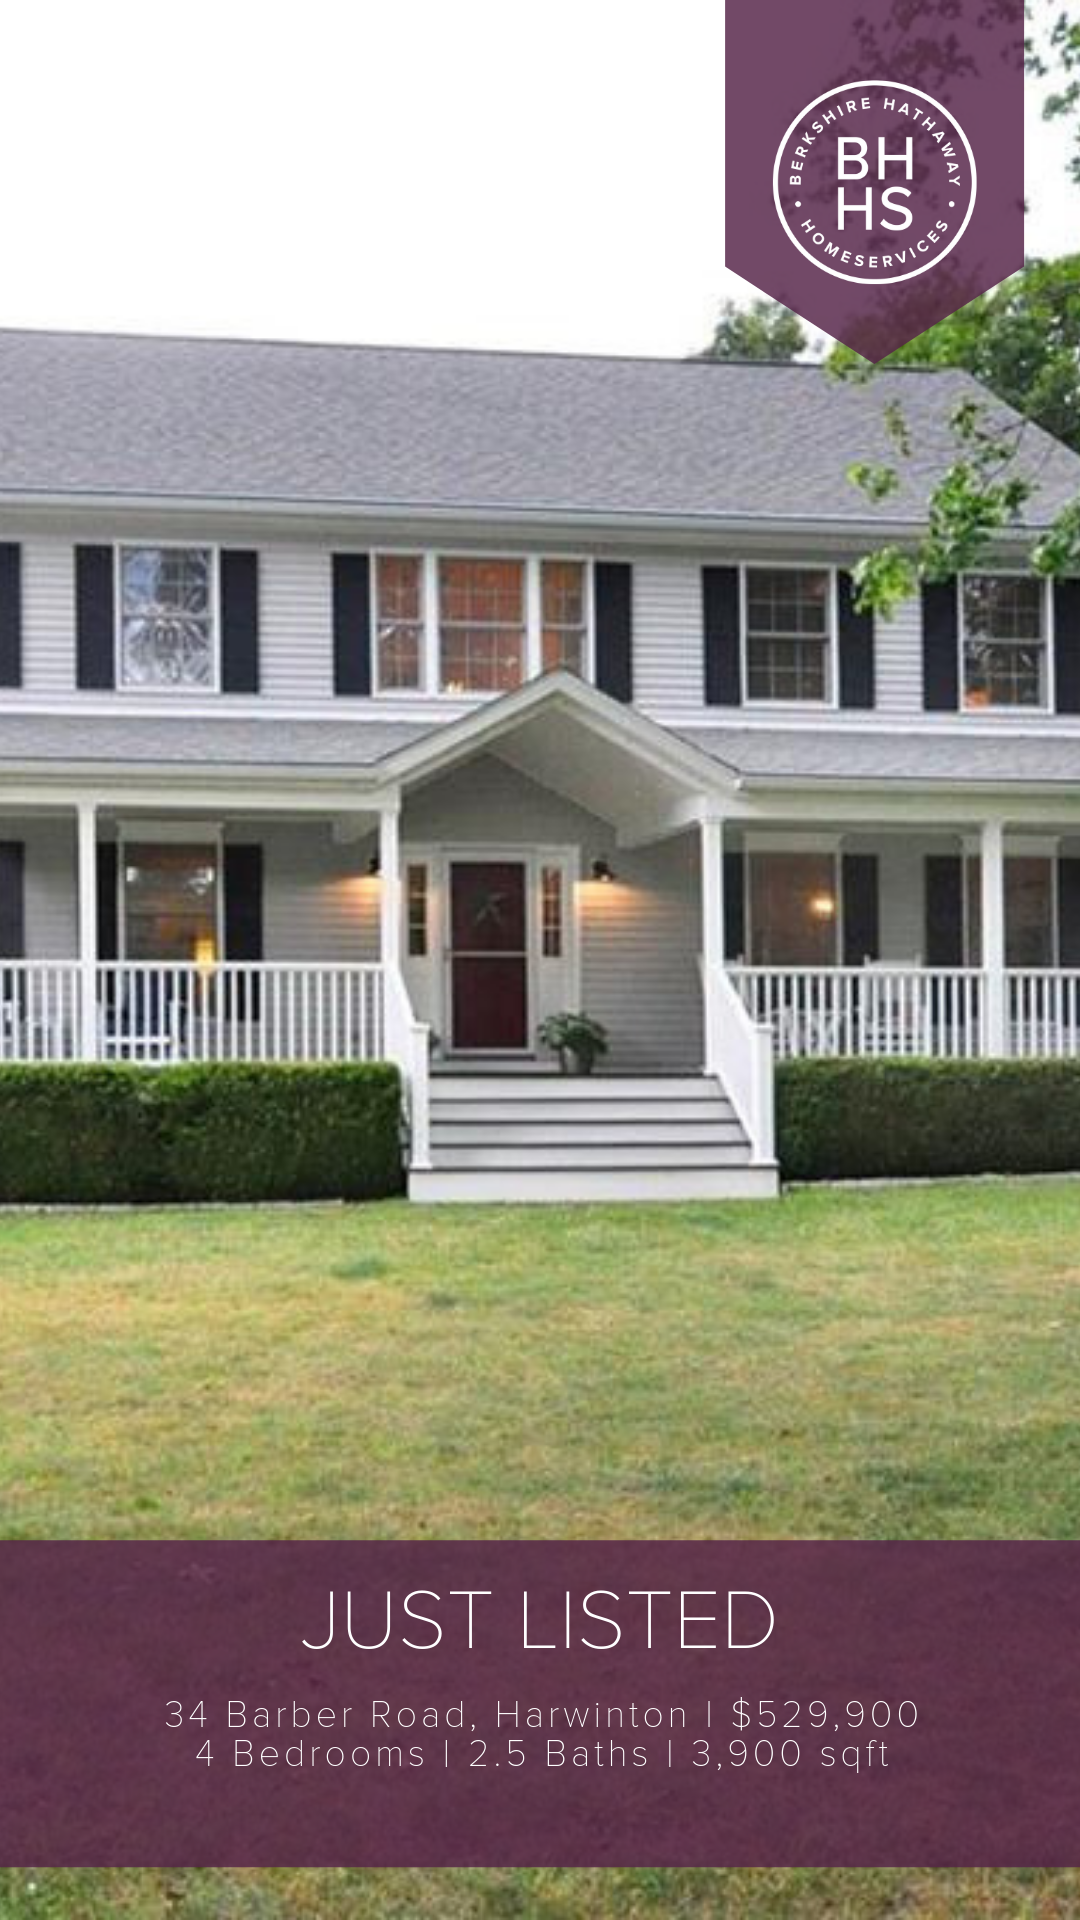 Check Out This Amazing Home In Harwinton Connecticut House Open House Outdoor Decor